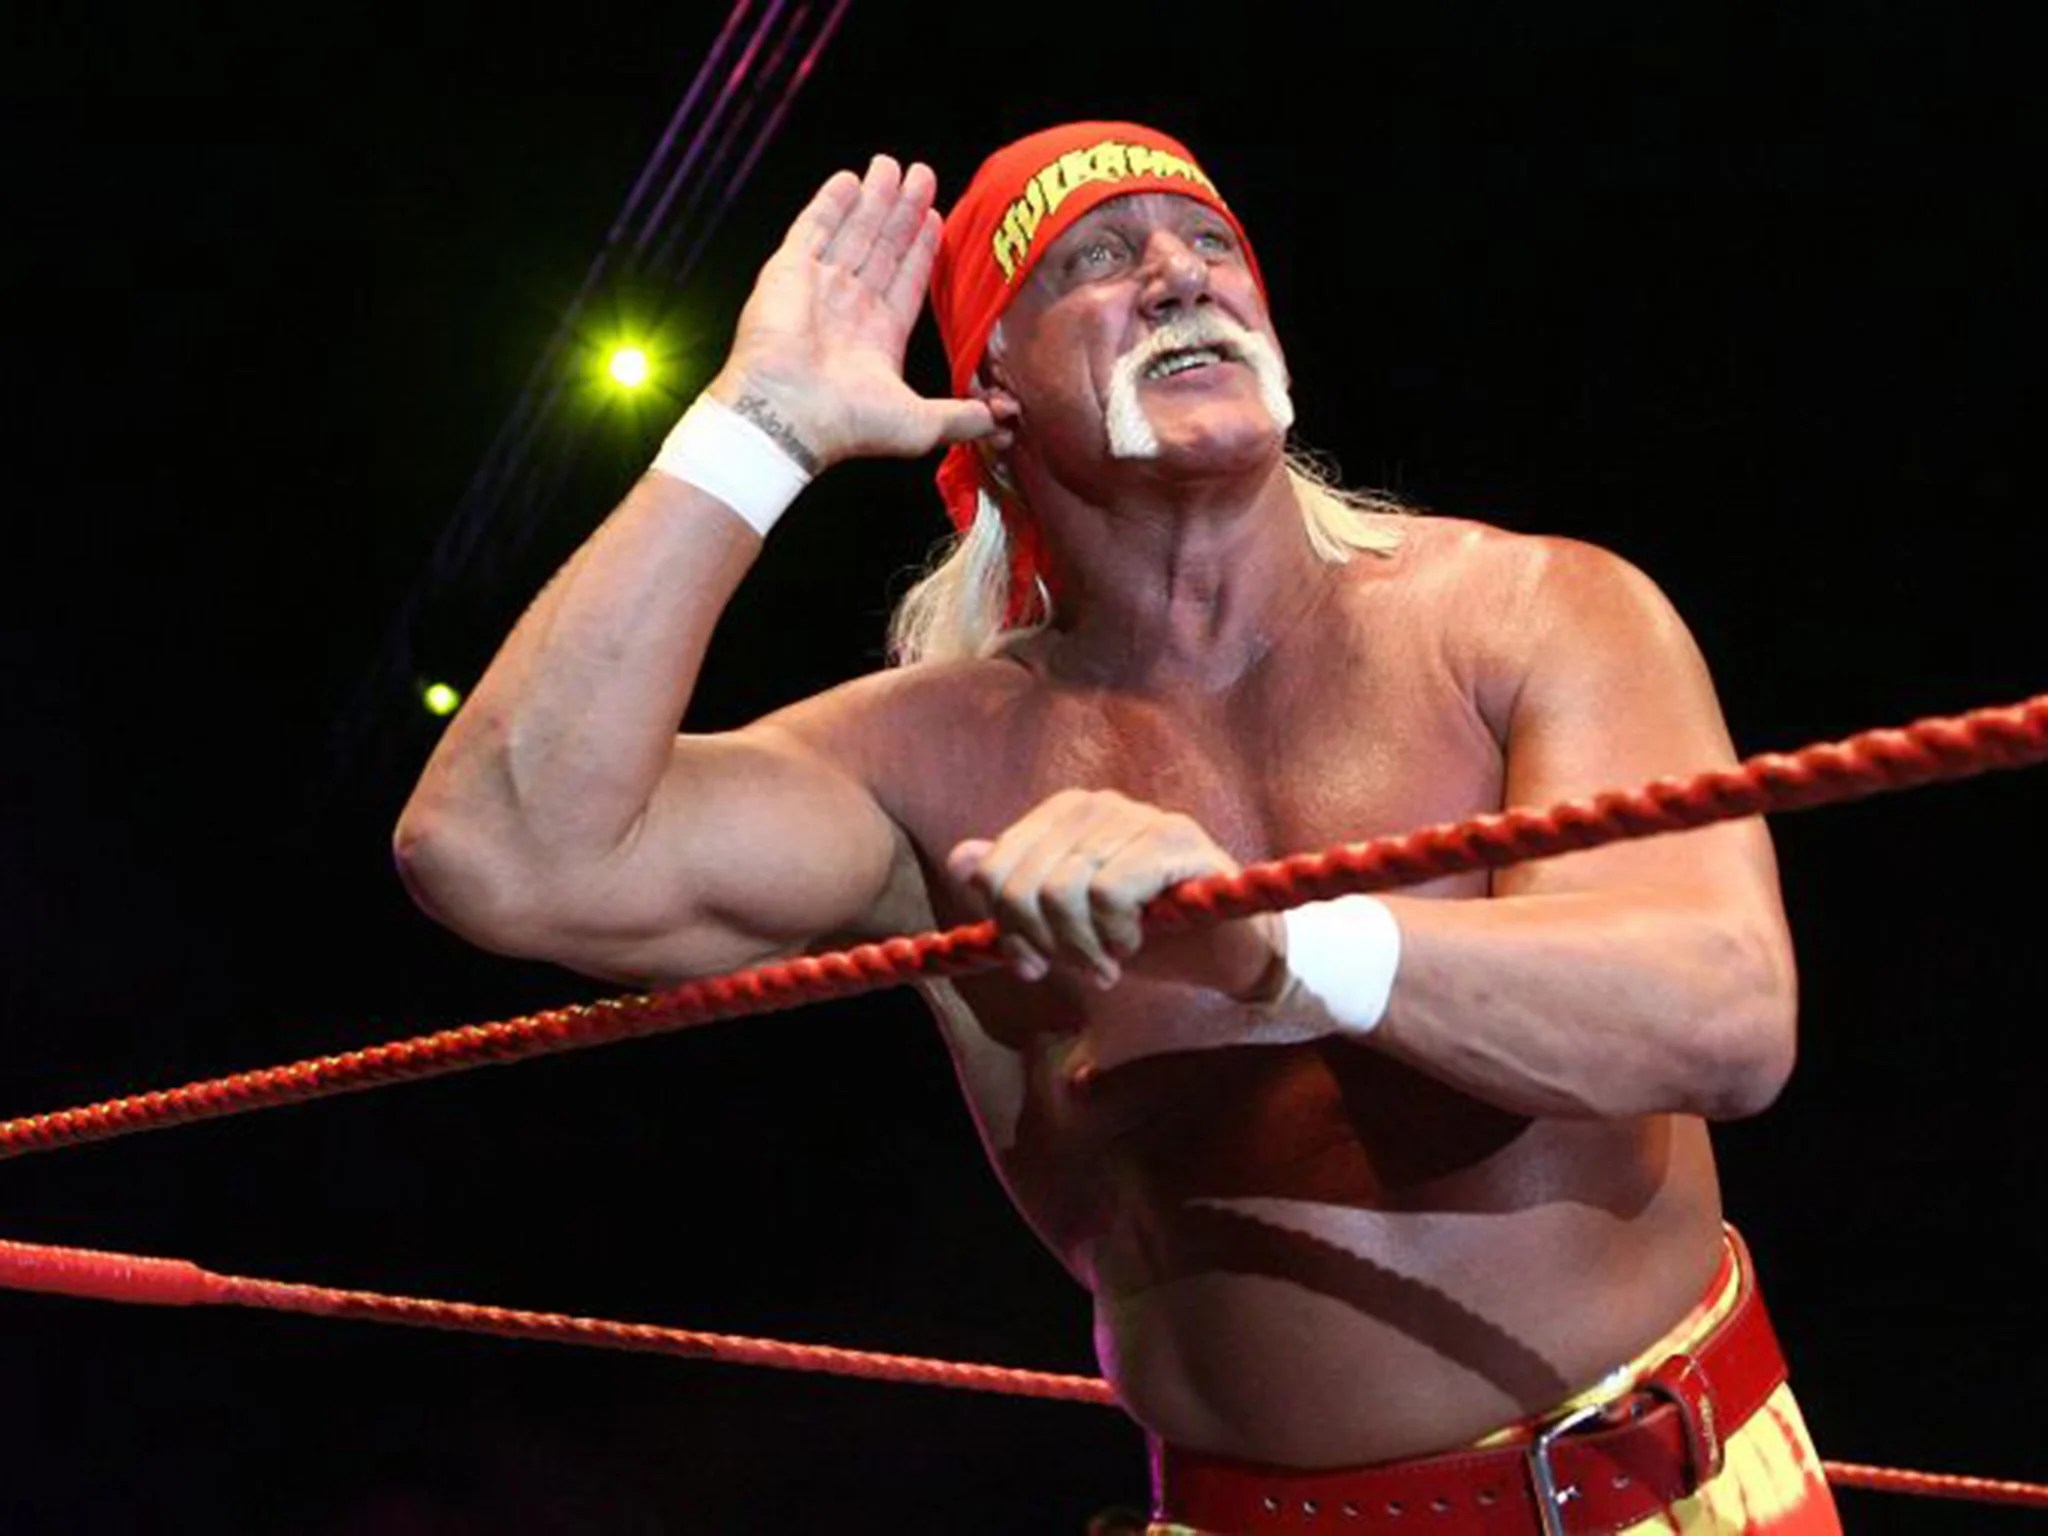 Hogan Hulk Hulk Hogan 39s Net Worth His Salary Source House Assets